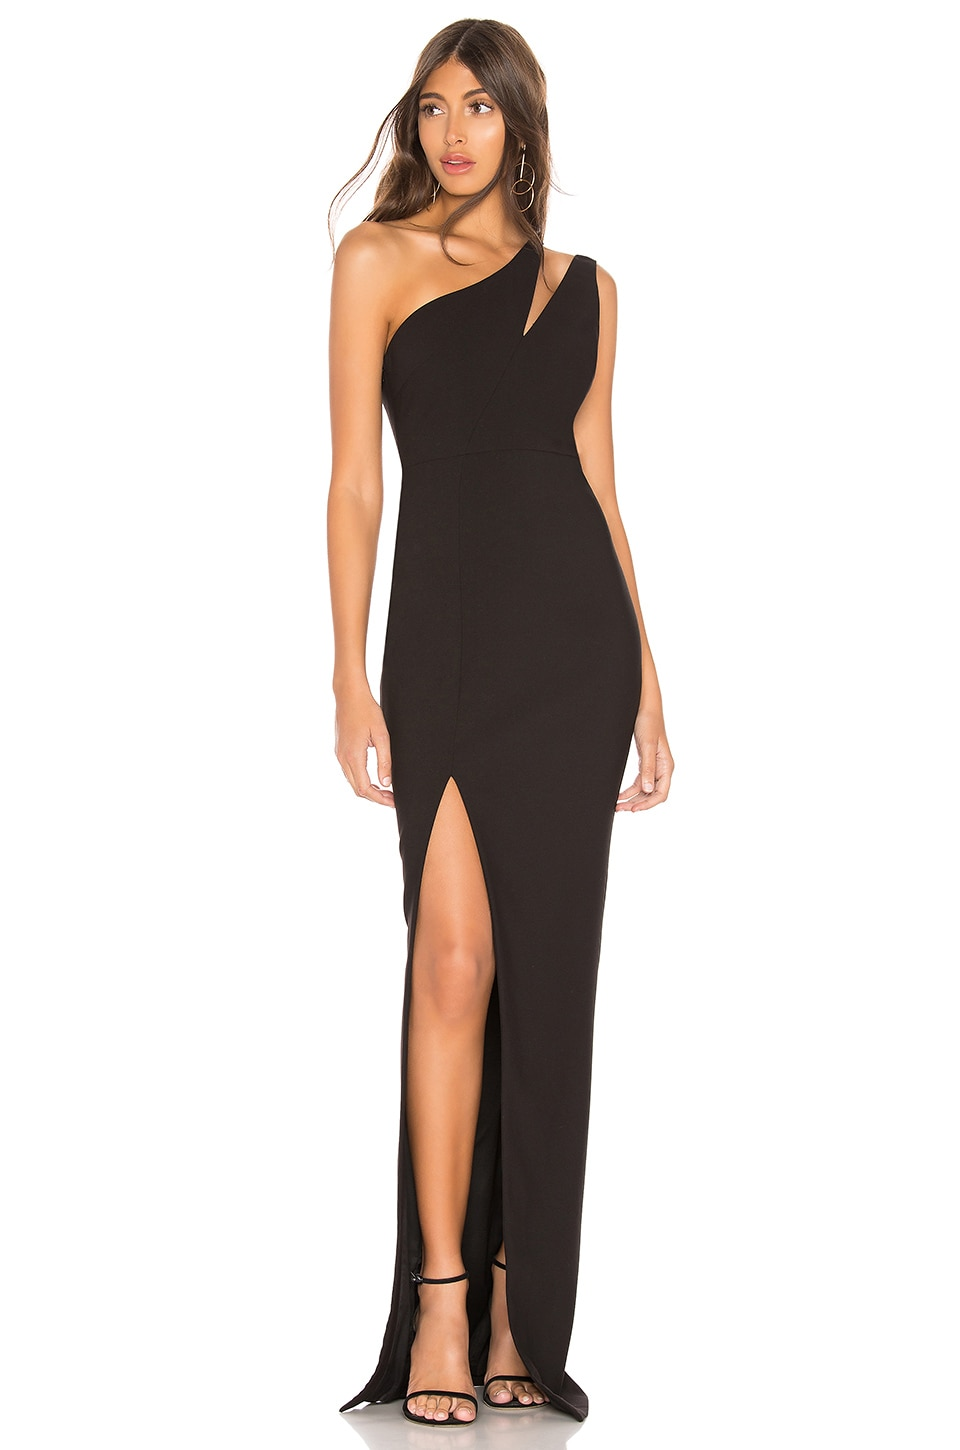 LIKELY Roxy Gown in Black